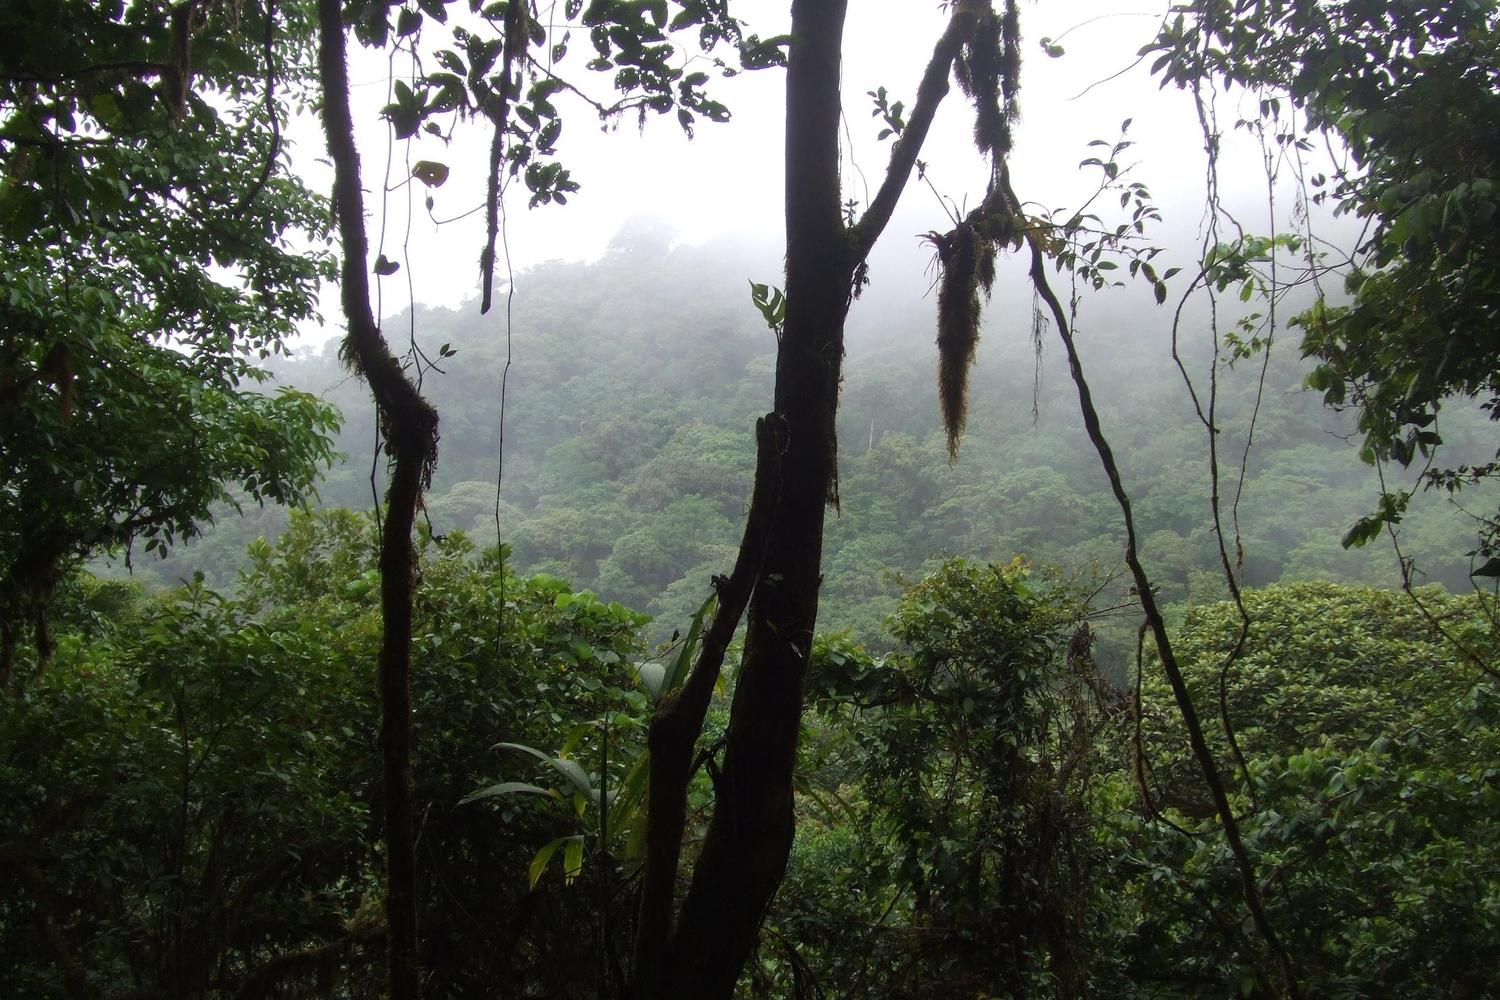 The damp canopy of the bird rich cloud forest of Costa Rica